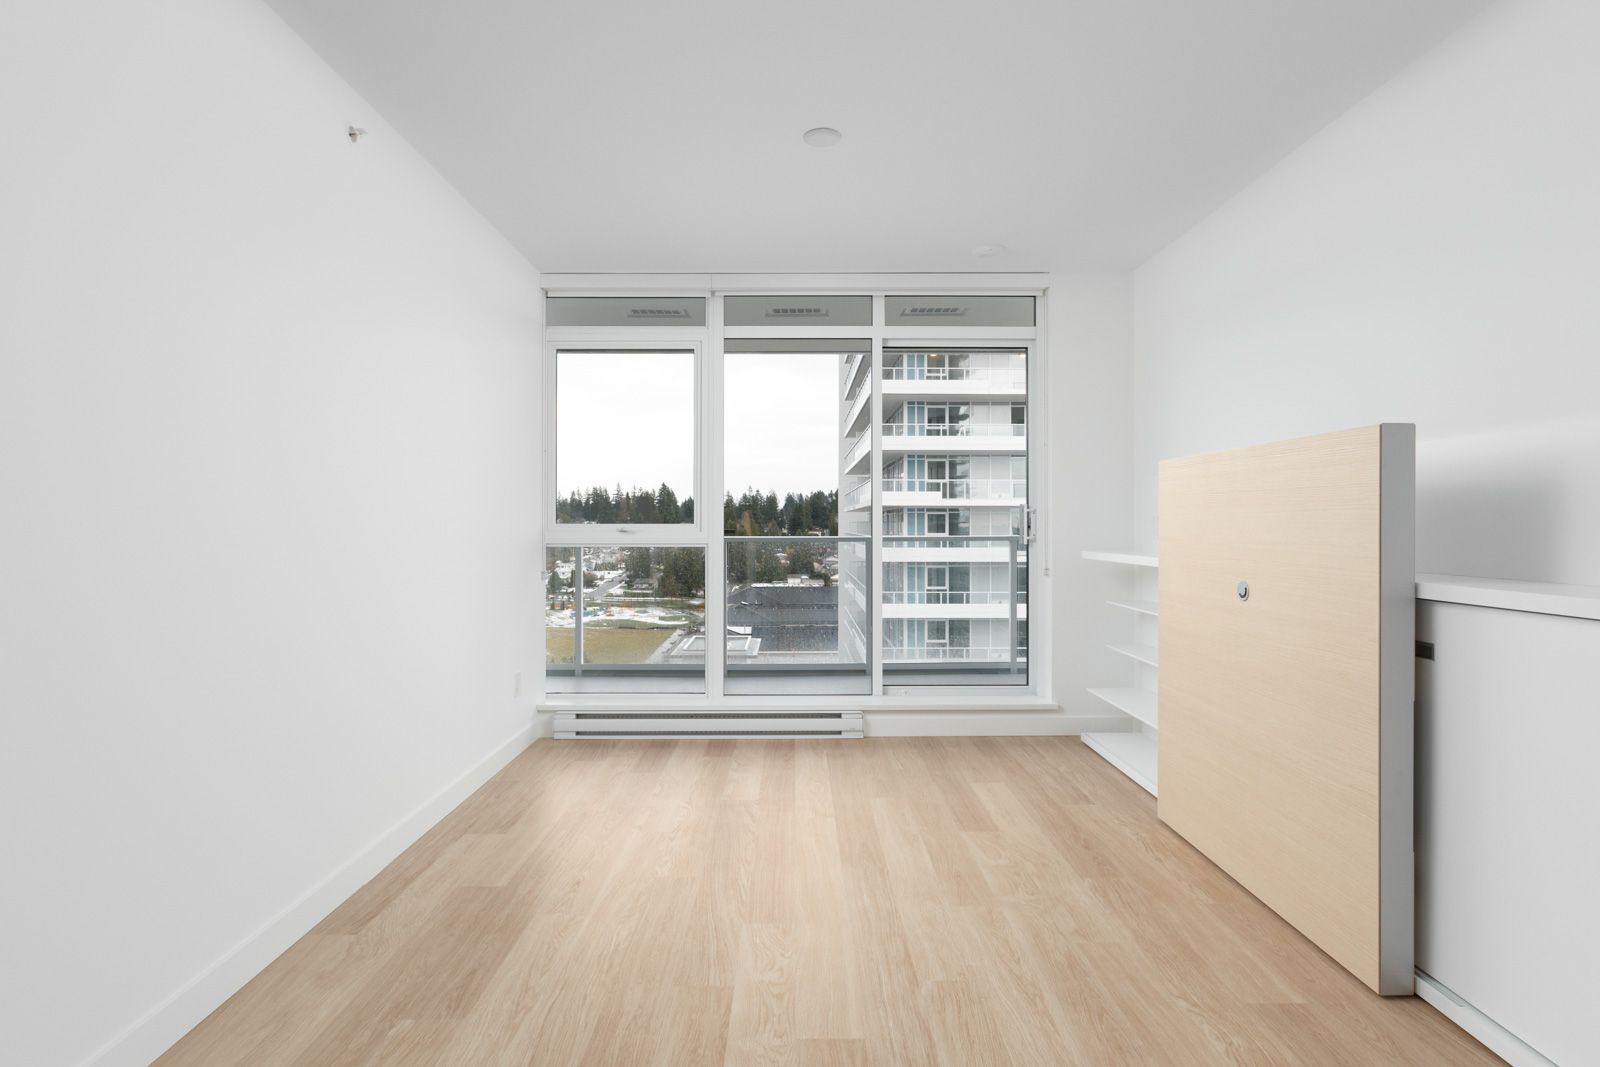 view of empty condo unit with hardwood floors and white walls looking straight out floor to ceiling window with building across the street on right side